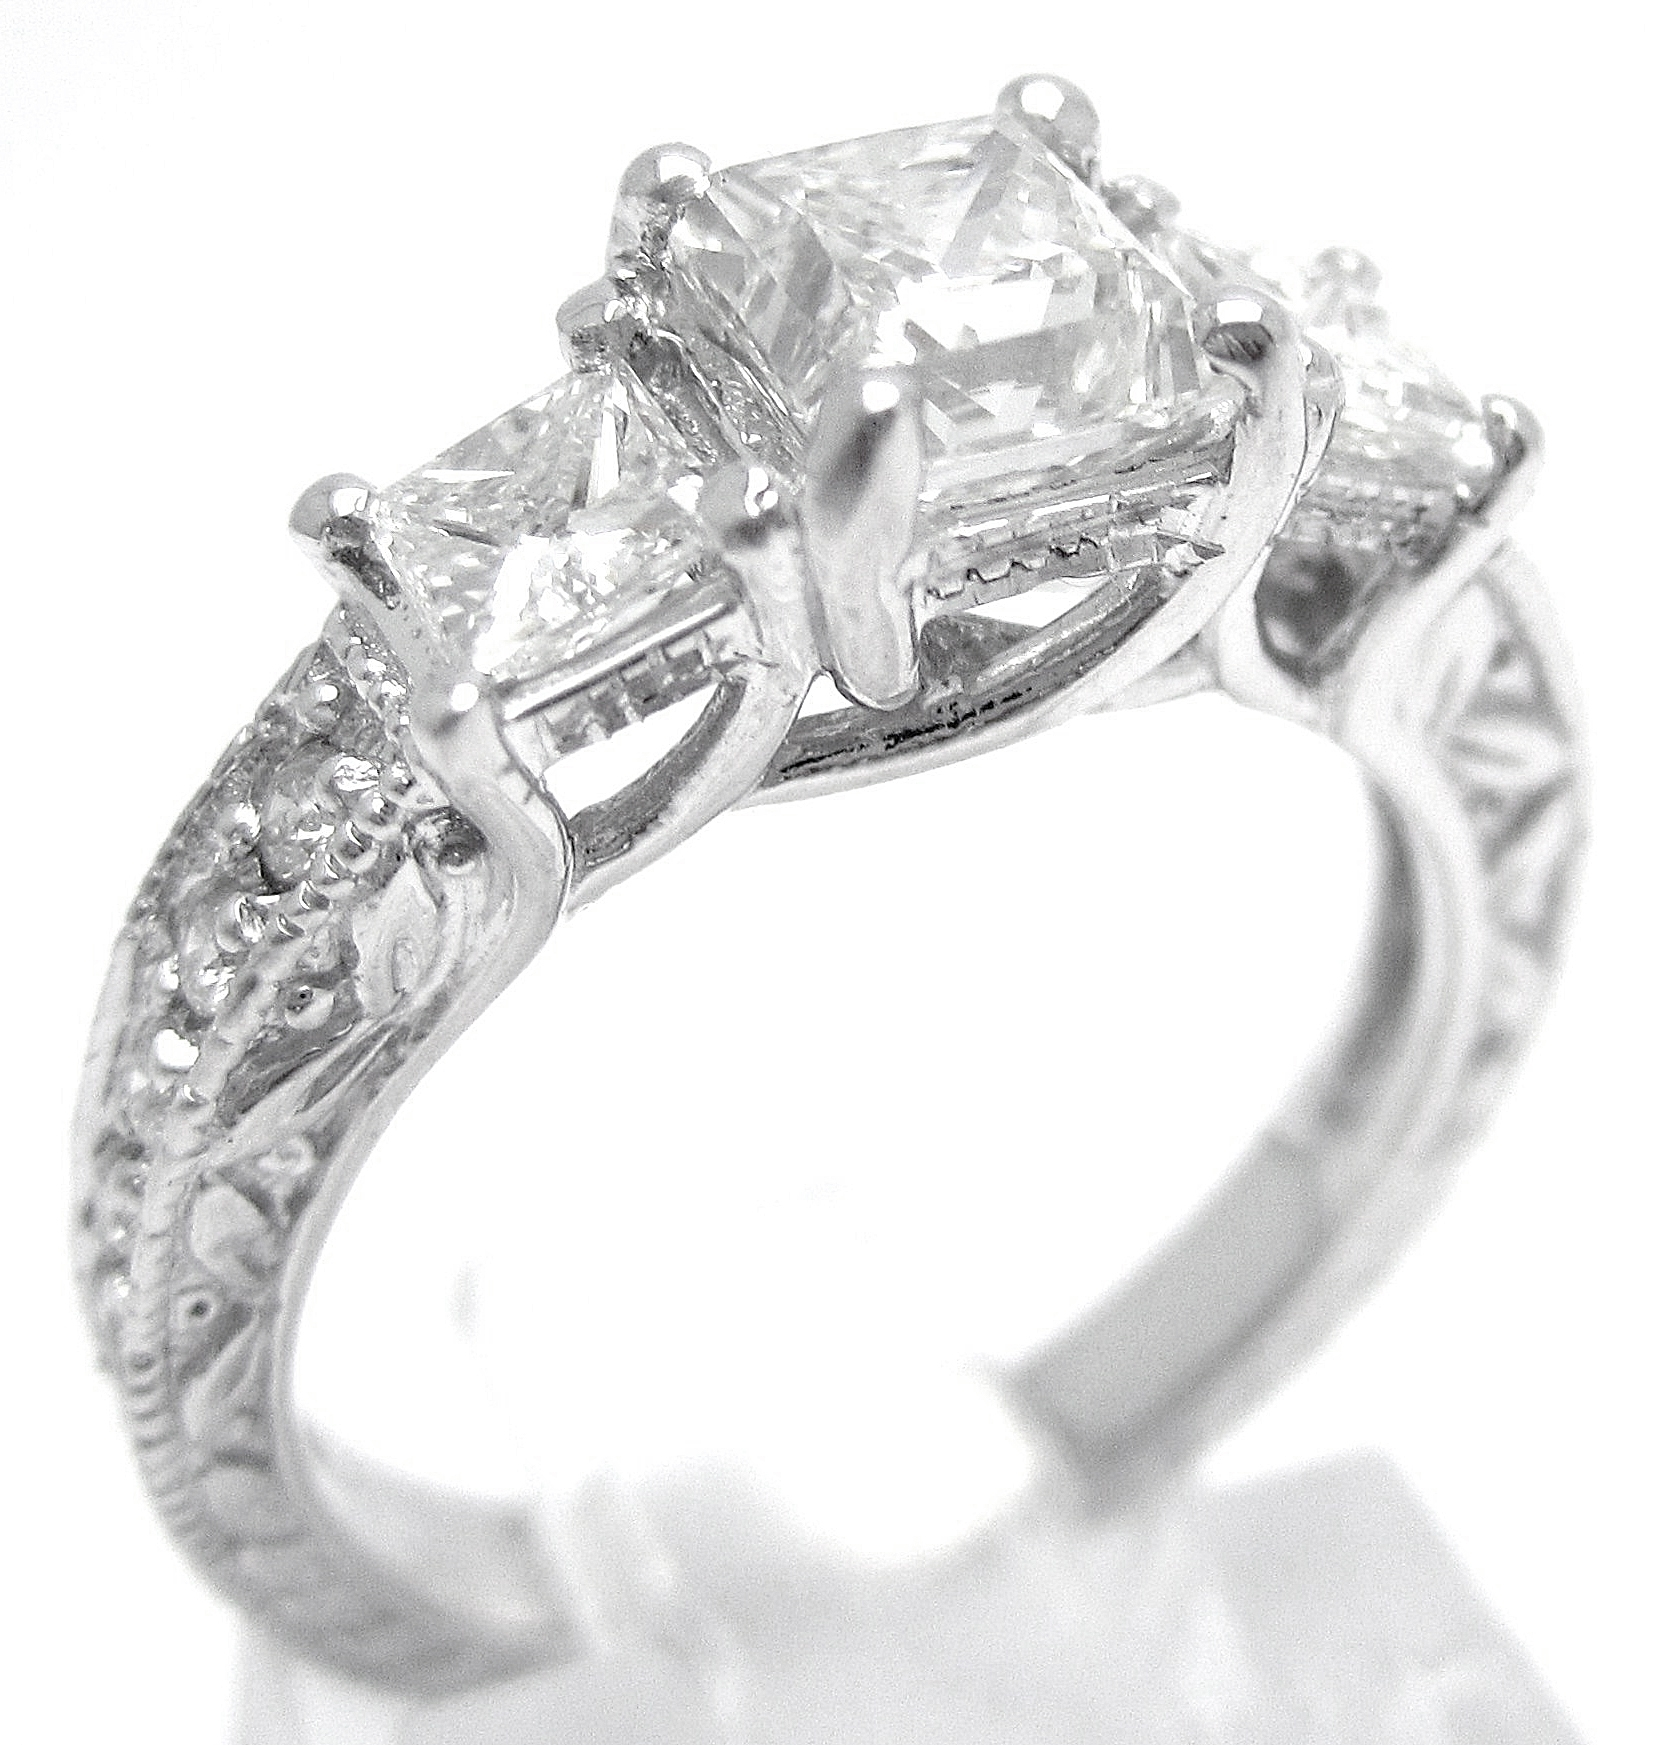 Princess Cut Three Stone Antique Style Diamond Engagement Ring With Intended For Best And Newest Antique Style Diamond Engagement Rings (Gallery 12 of 15)